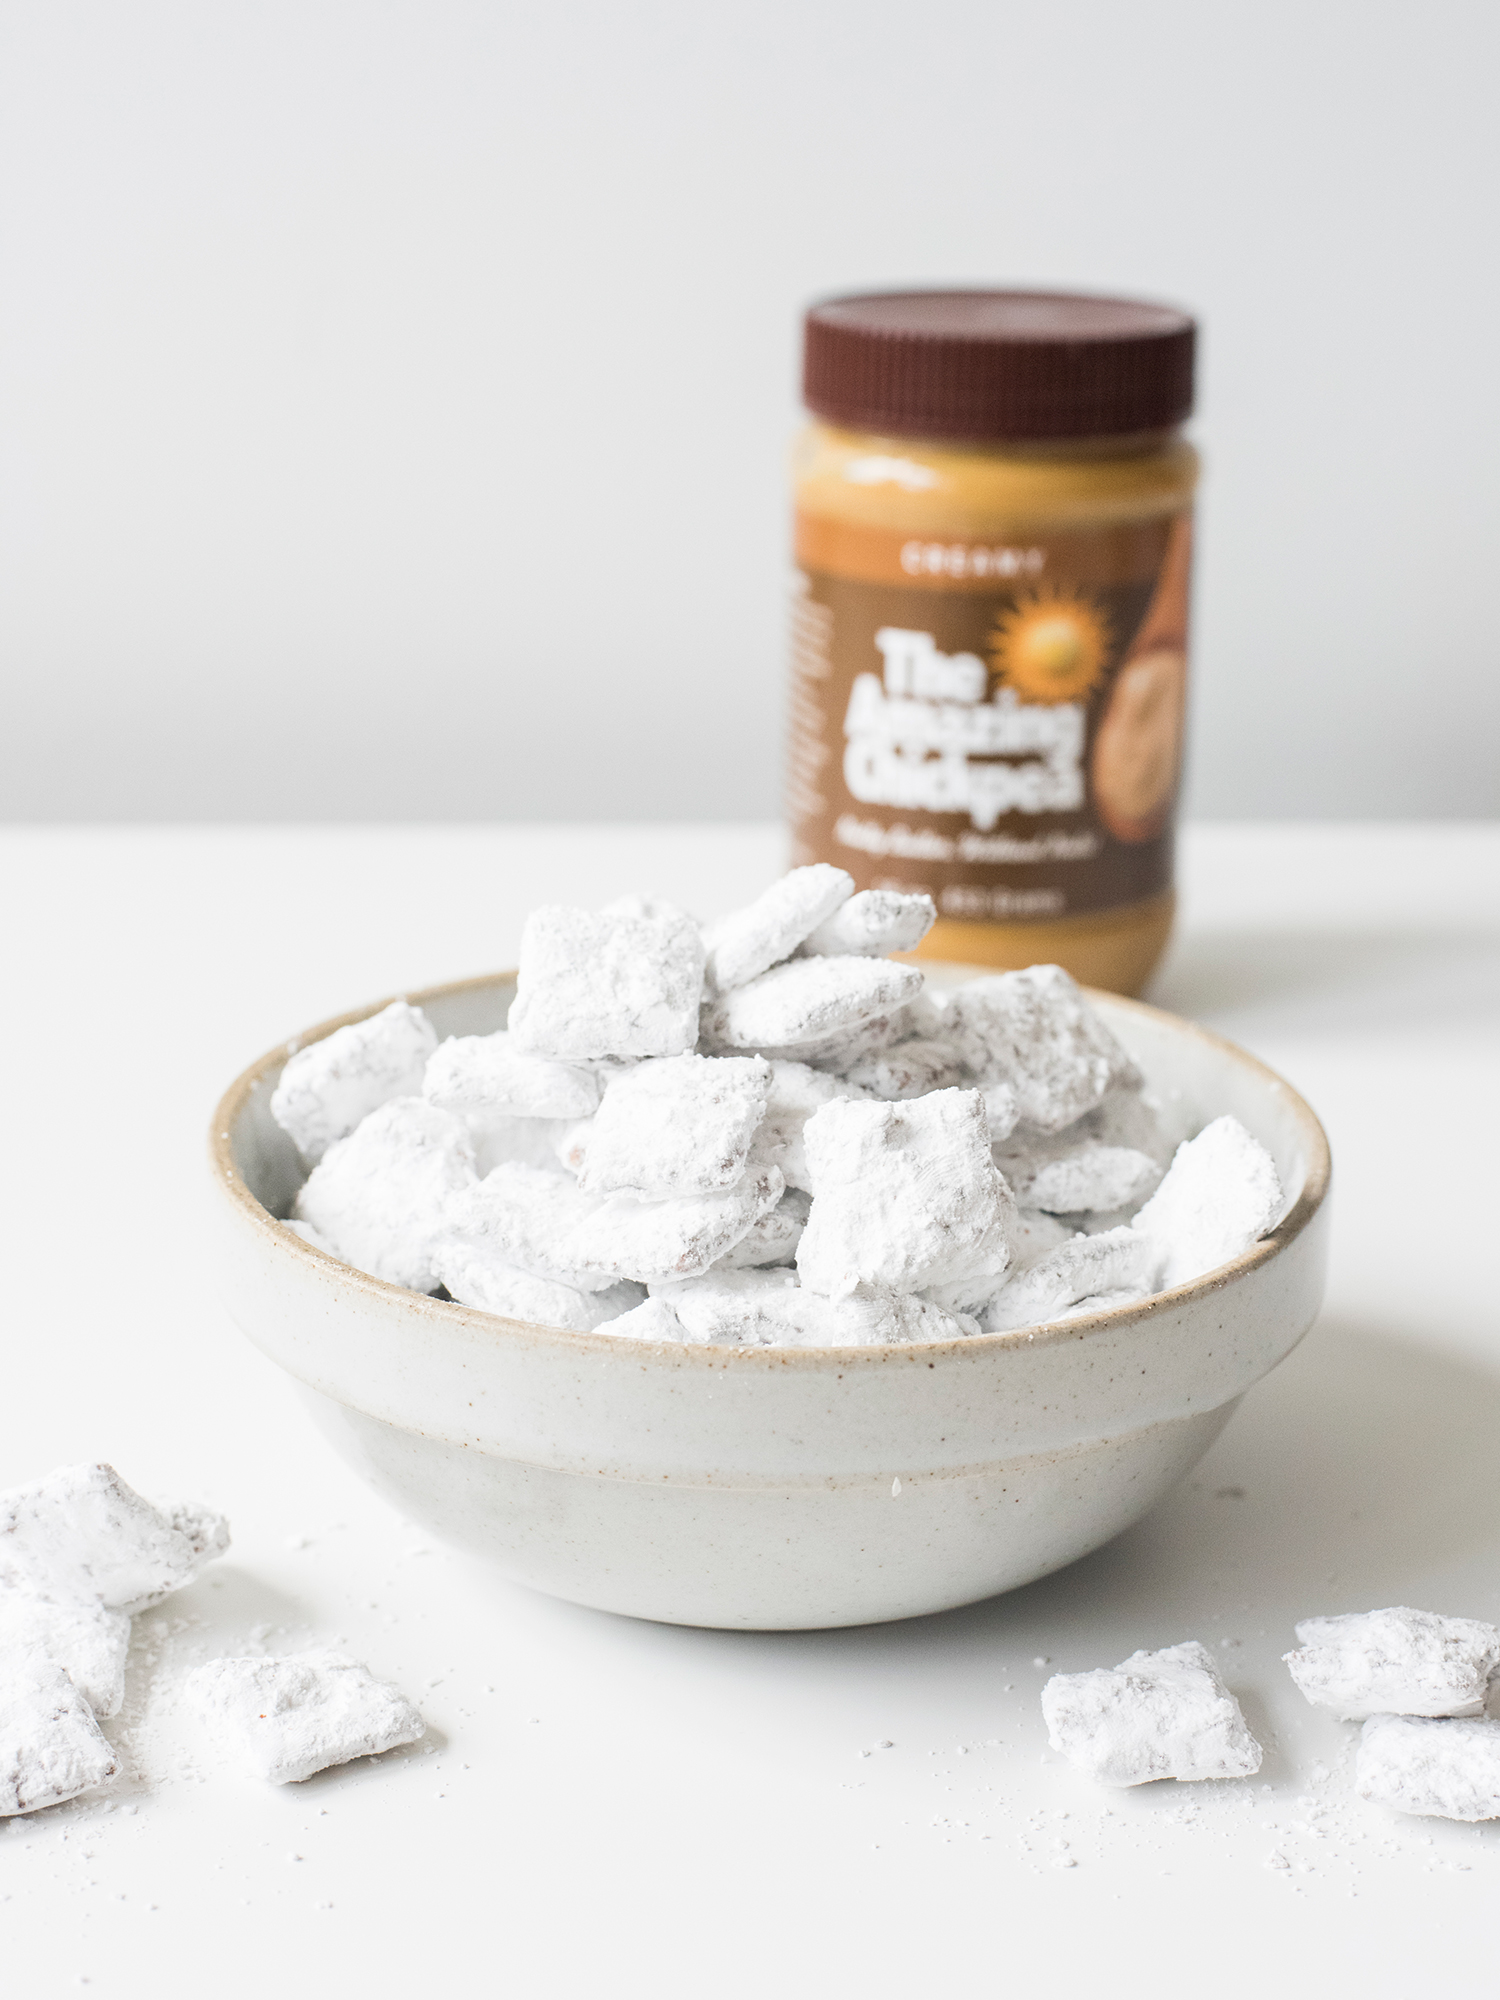 The Amazing Chickpea Puppy Chow